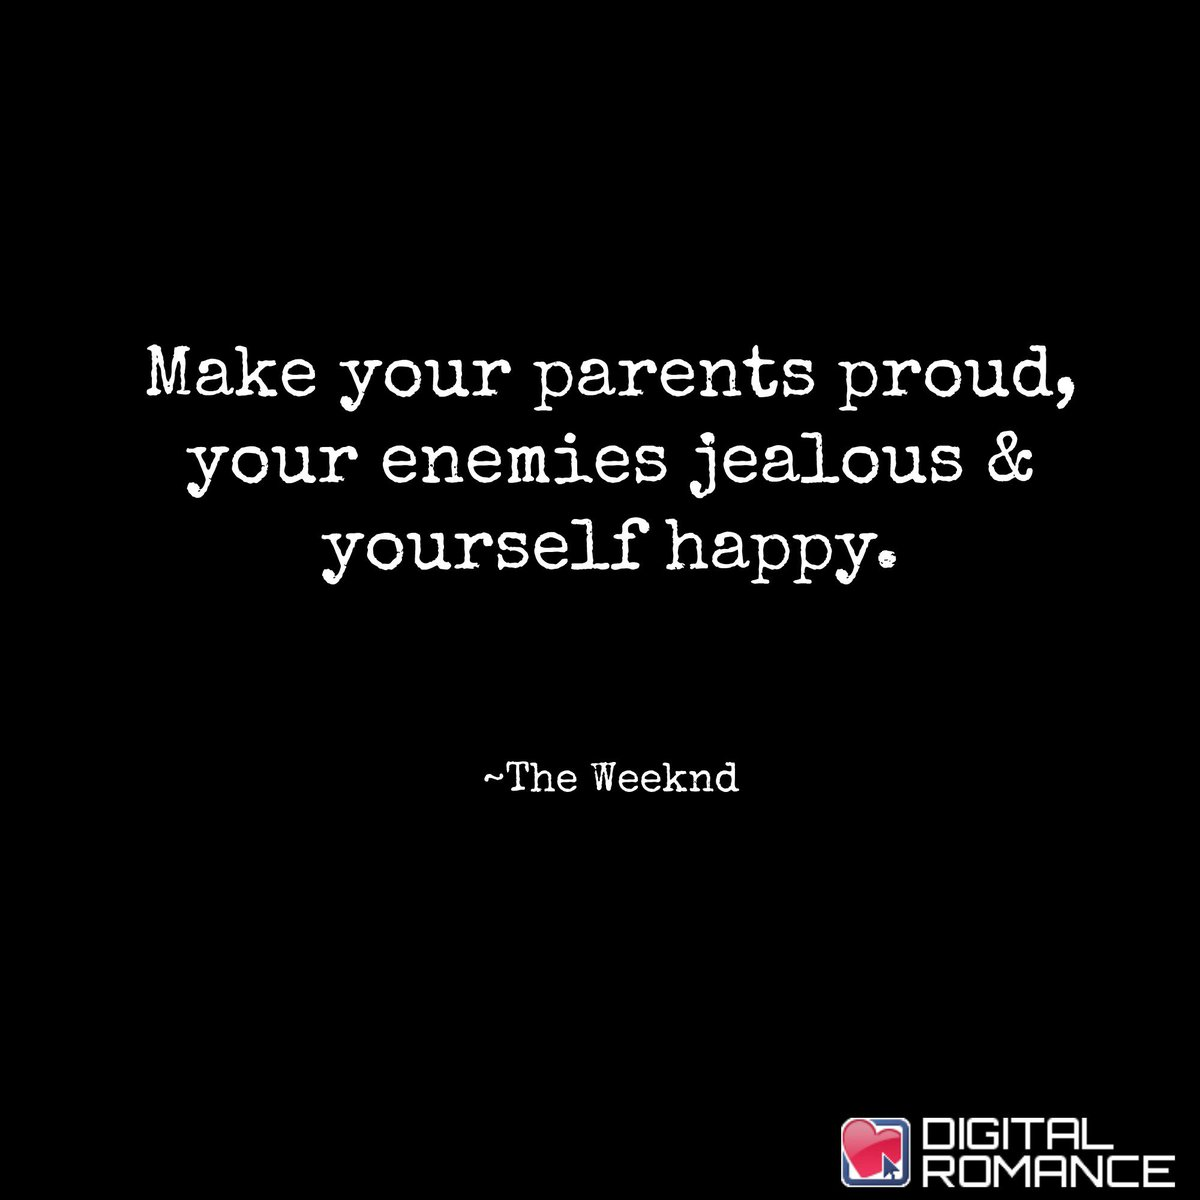 "Digital Romance Inc On Twitter: ""Make Your Parents Proud"